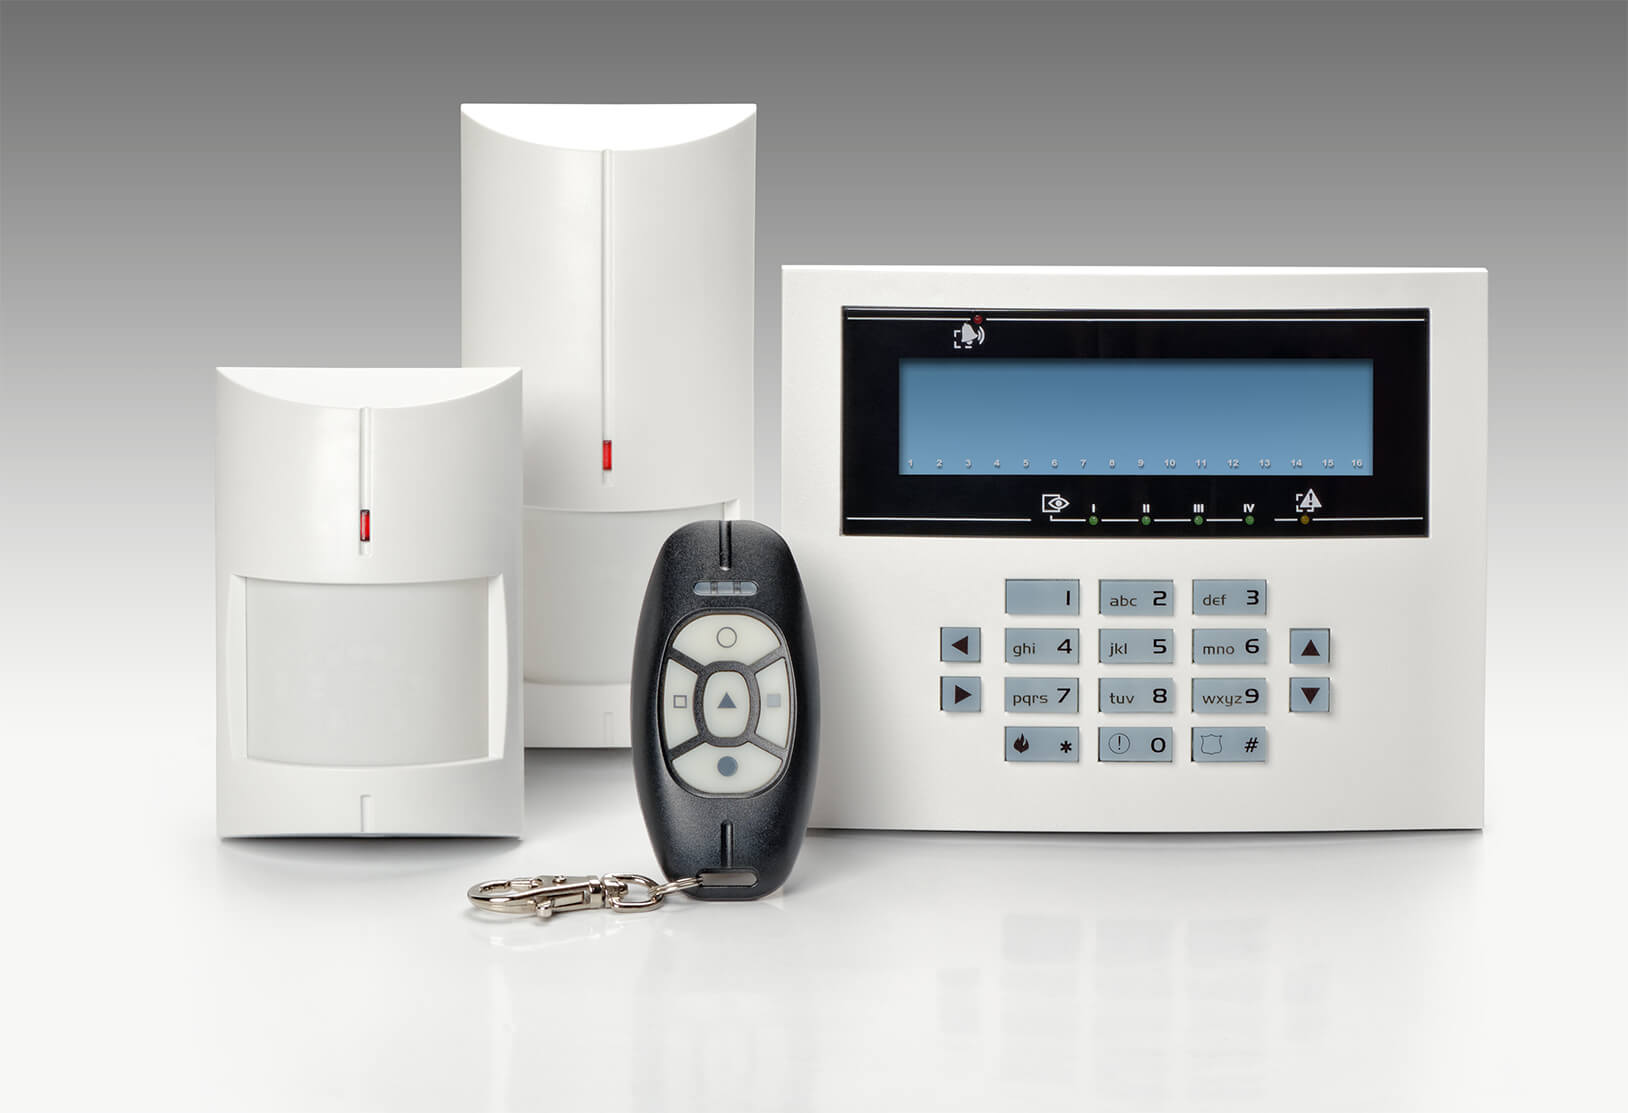 Business & Residential NACOSS Approved Burglar Alarms In Abbey Wood SE2 - Local Abbey Wood SE2 security company.Call 02078872244 - Dedicated to Safety & Security. Companies, shops and homes ..